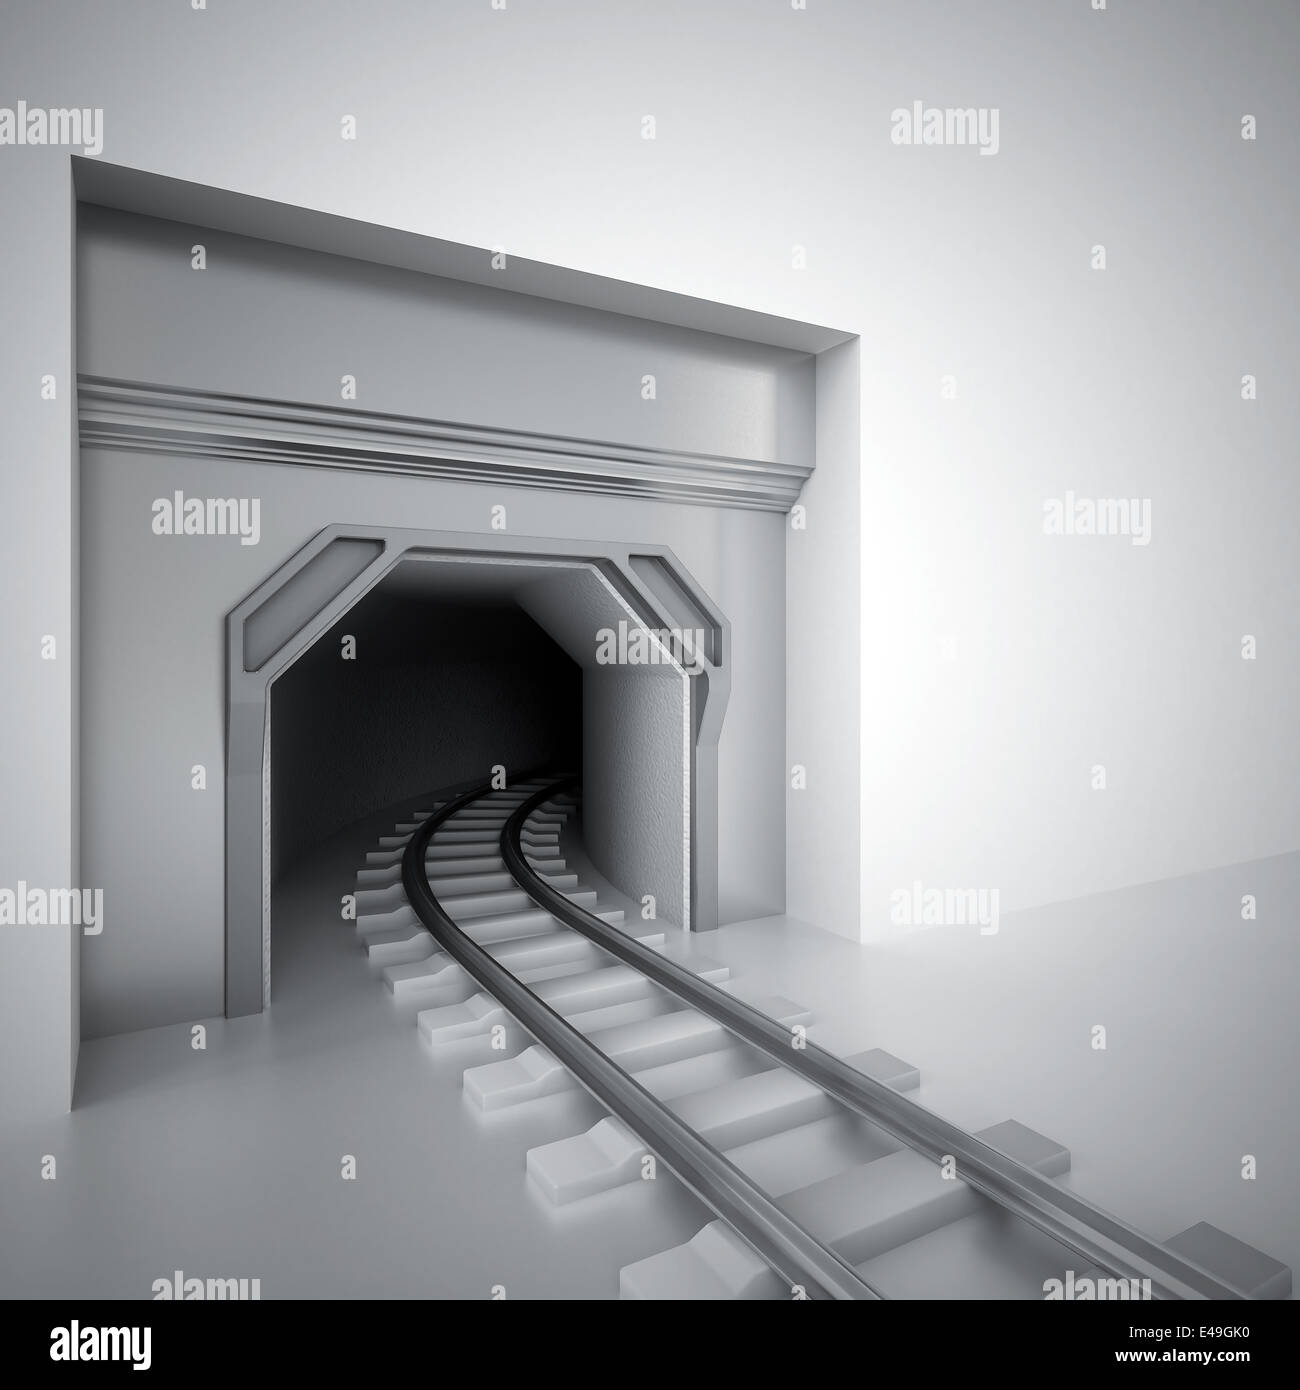 tunnel and metal railway leaving in darkness - Stock Image